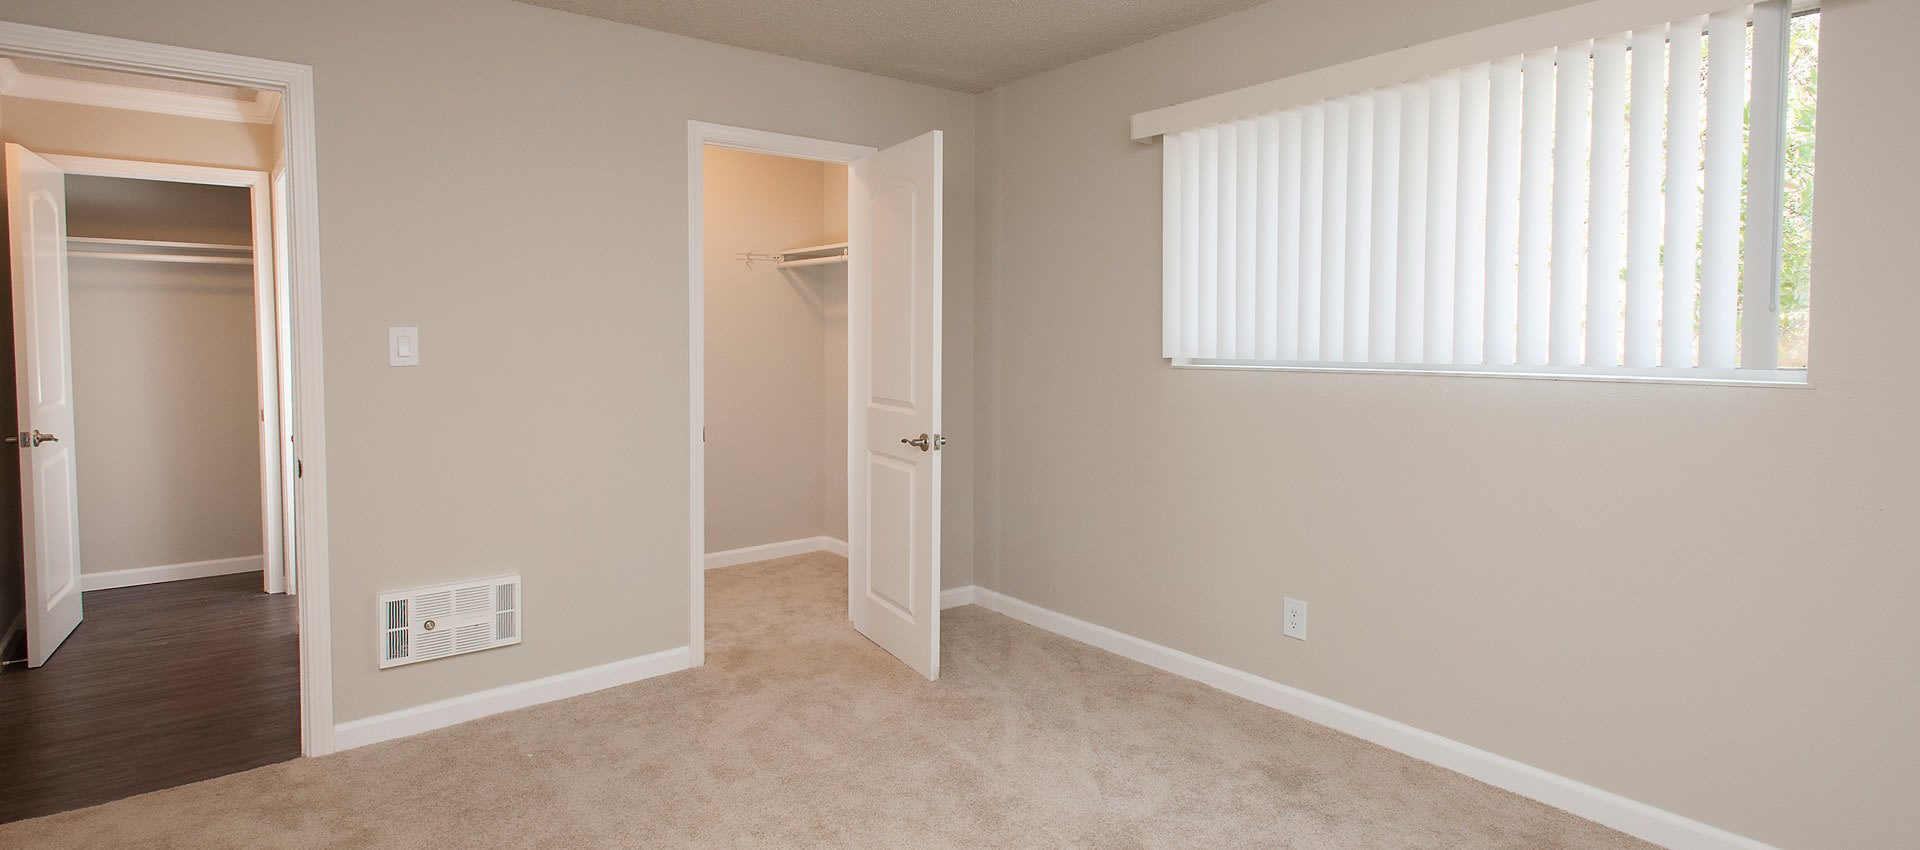 Bedroom at Regency Plaza Apartment Homes in Martinez, CA